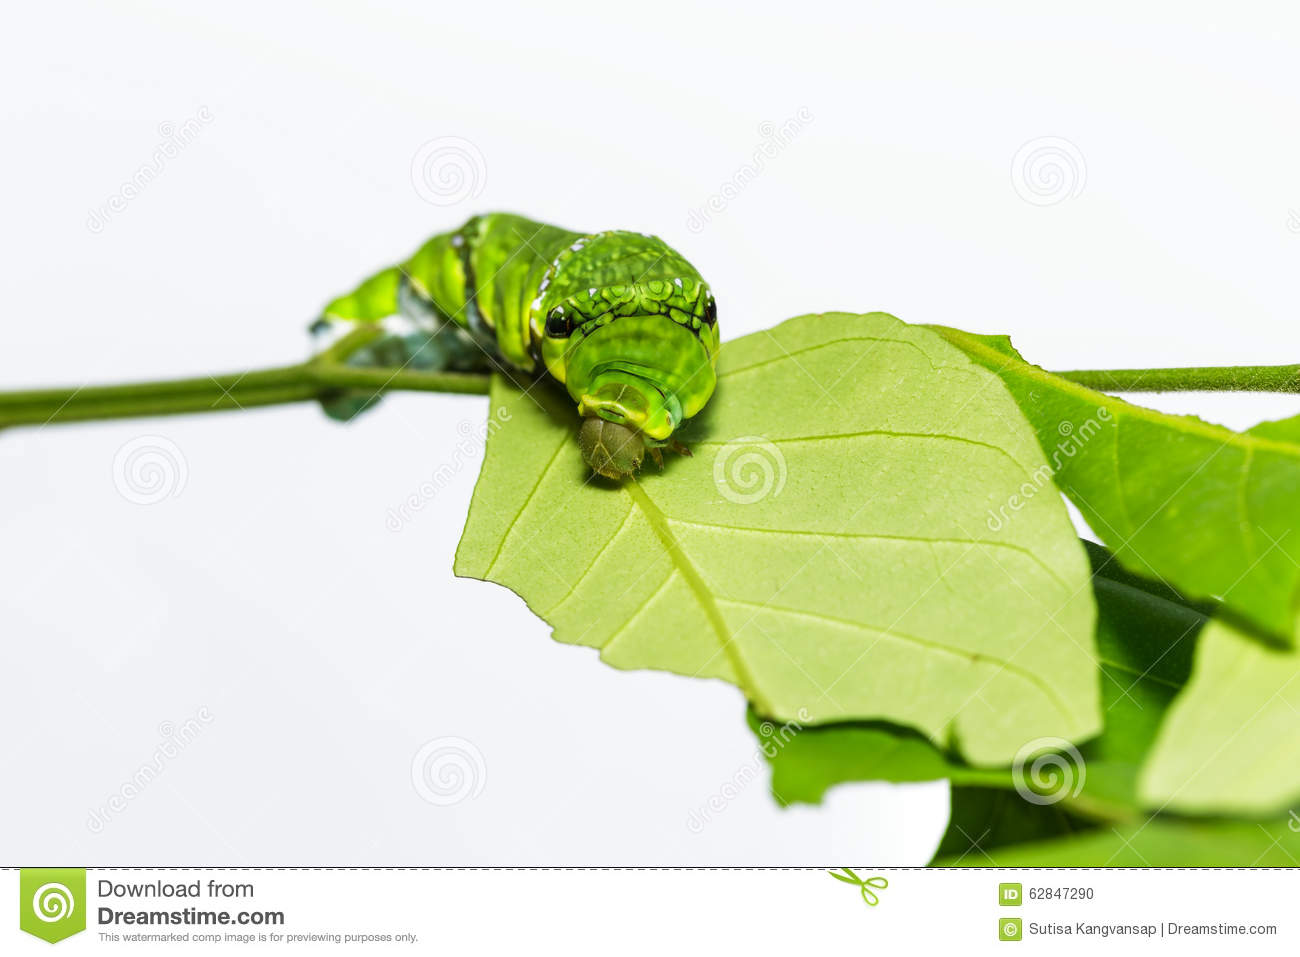 Caterpillar of Common mormon butterfly on leaf